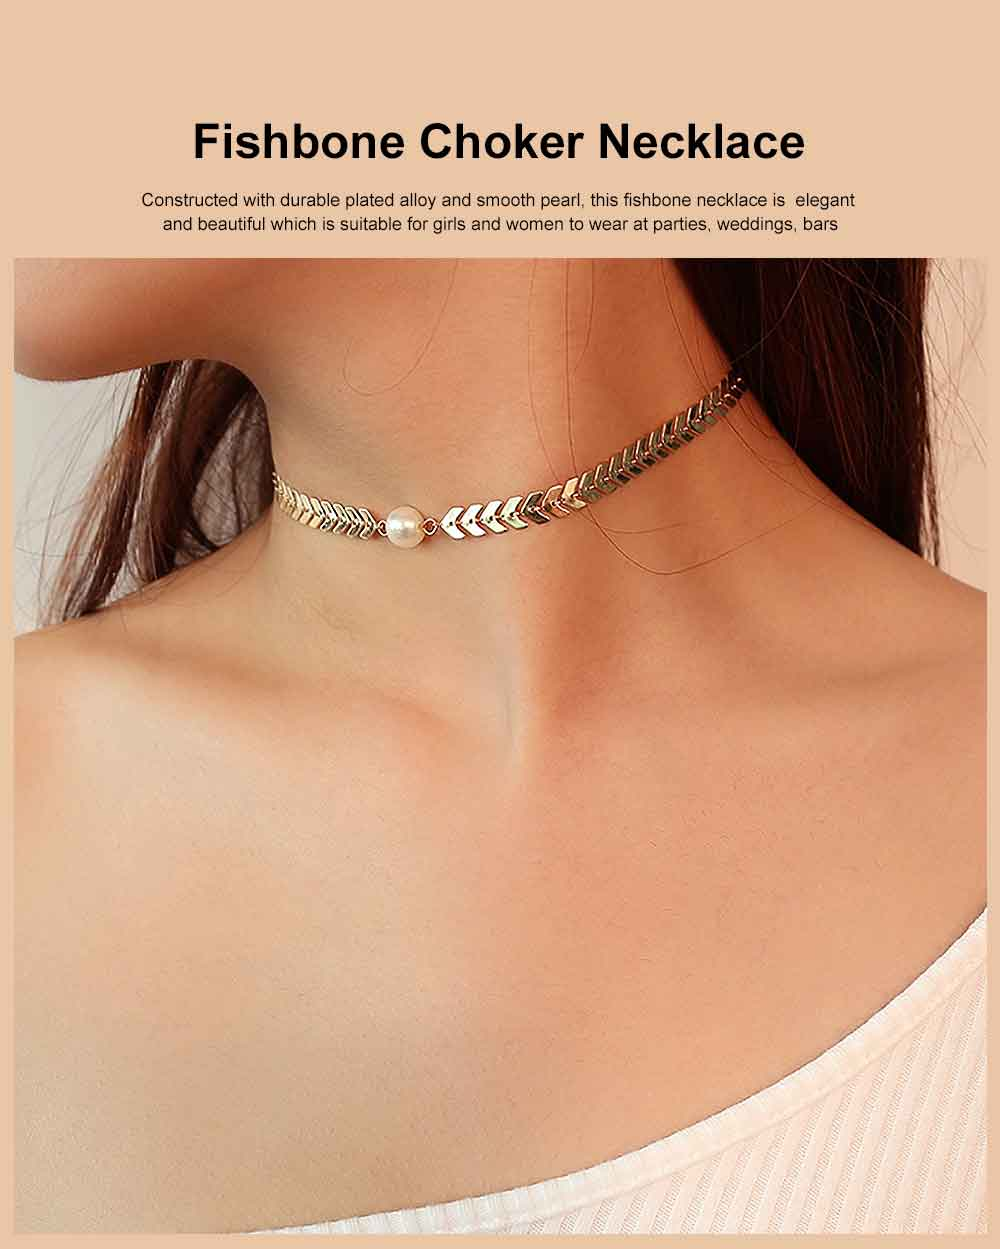 Fishbone Choker Necklace Pearl Pendant Chain Casual Choker Necklace for Women and Girls 0